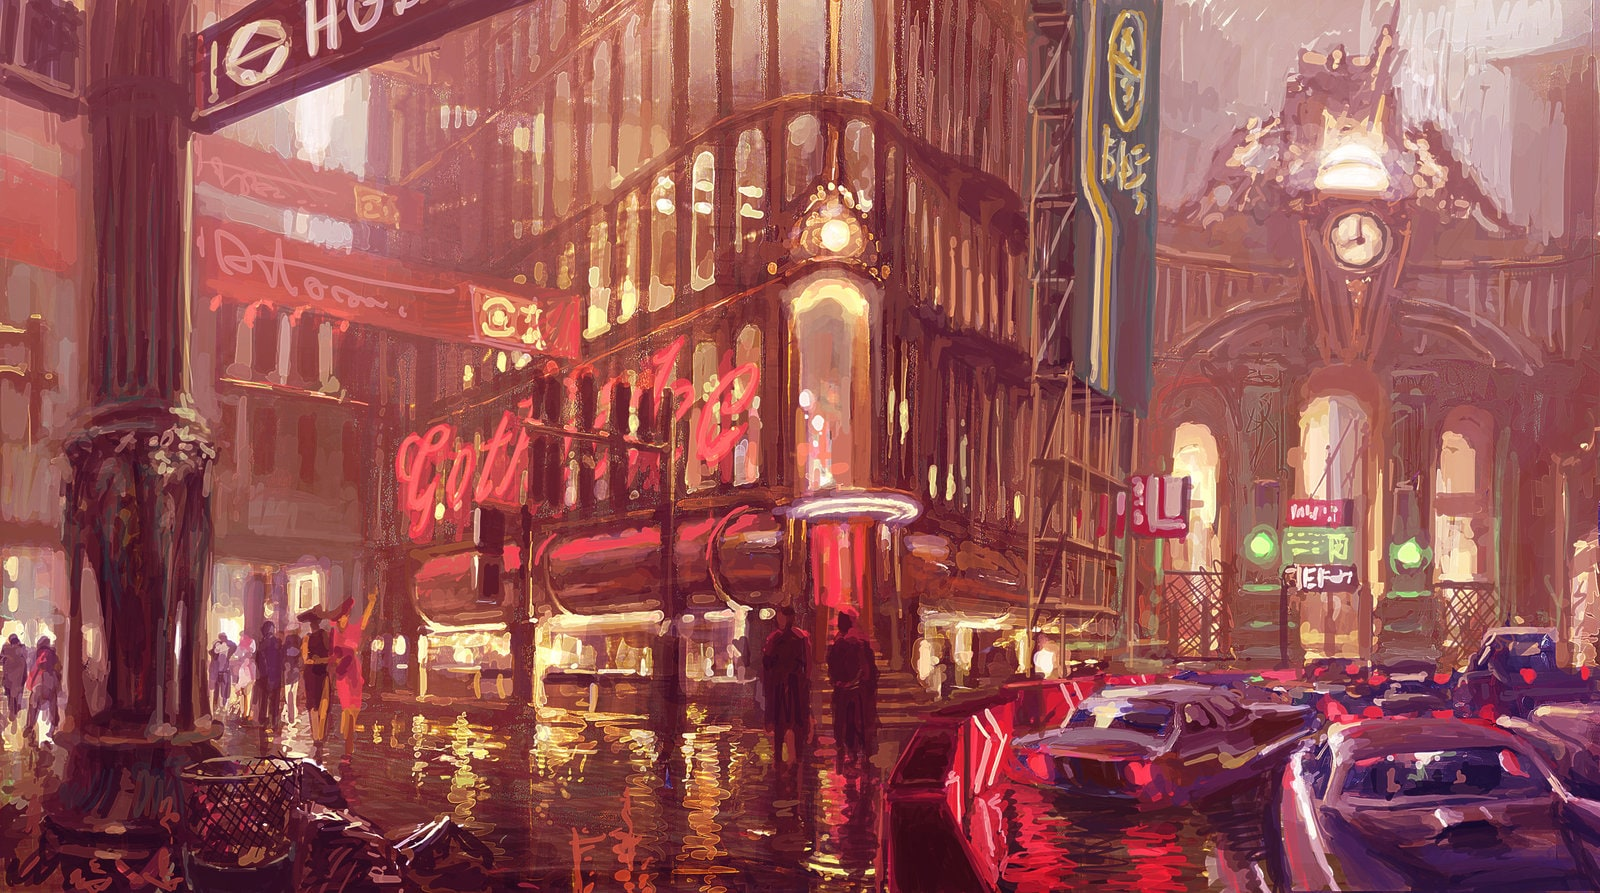 painting_the_town_red_by_peteamachree-d34pb9c